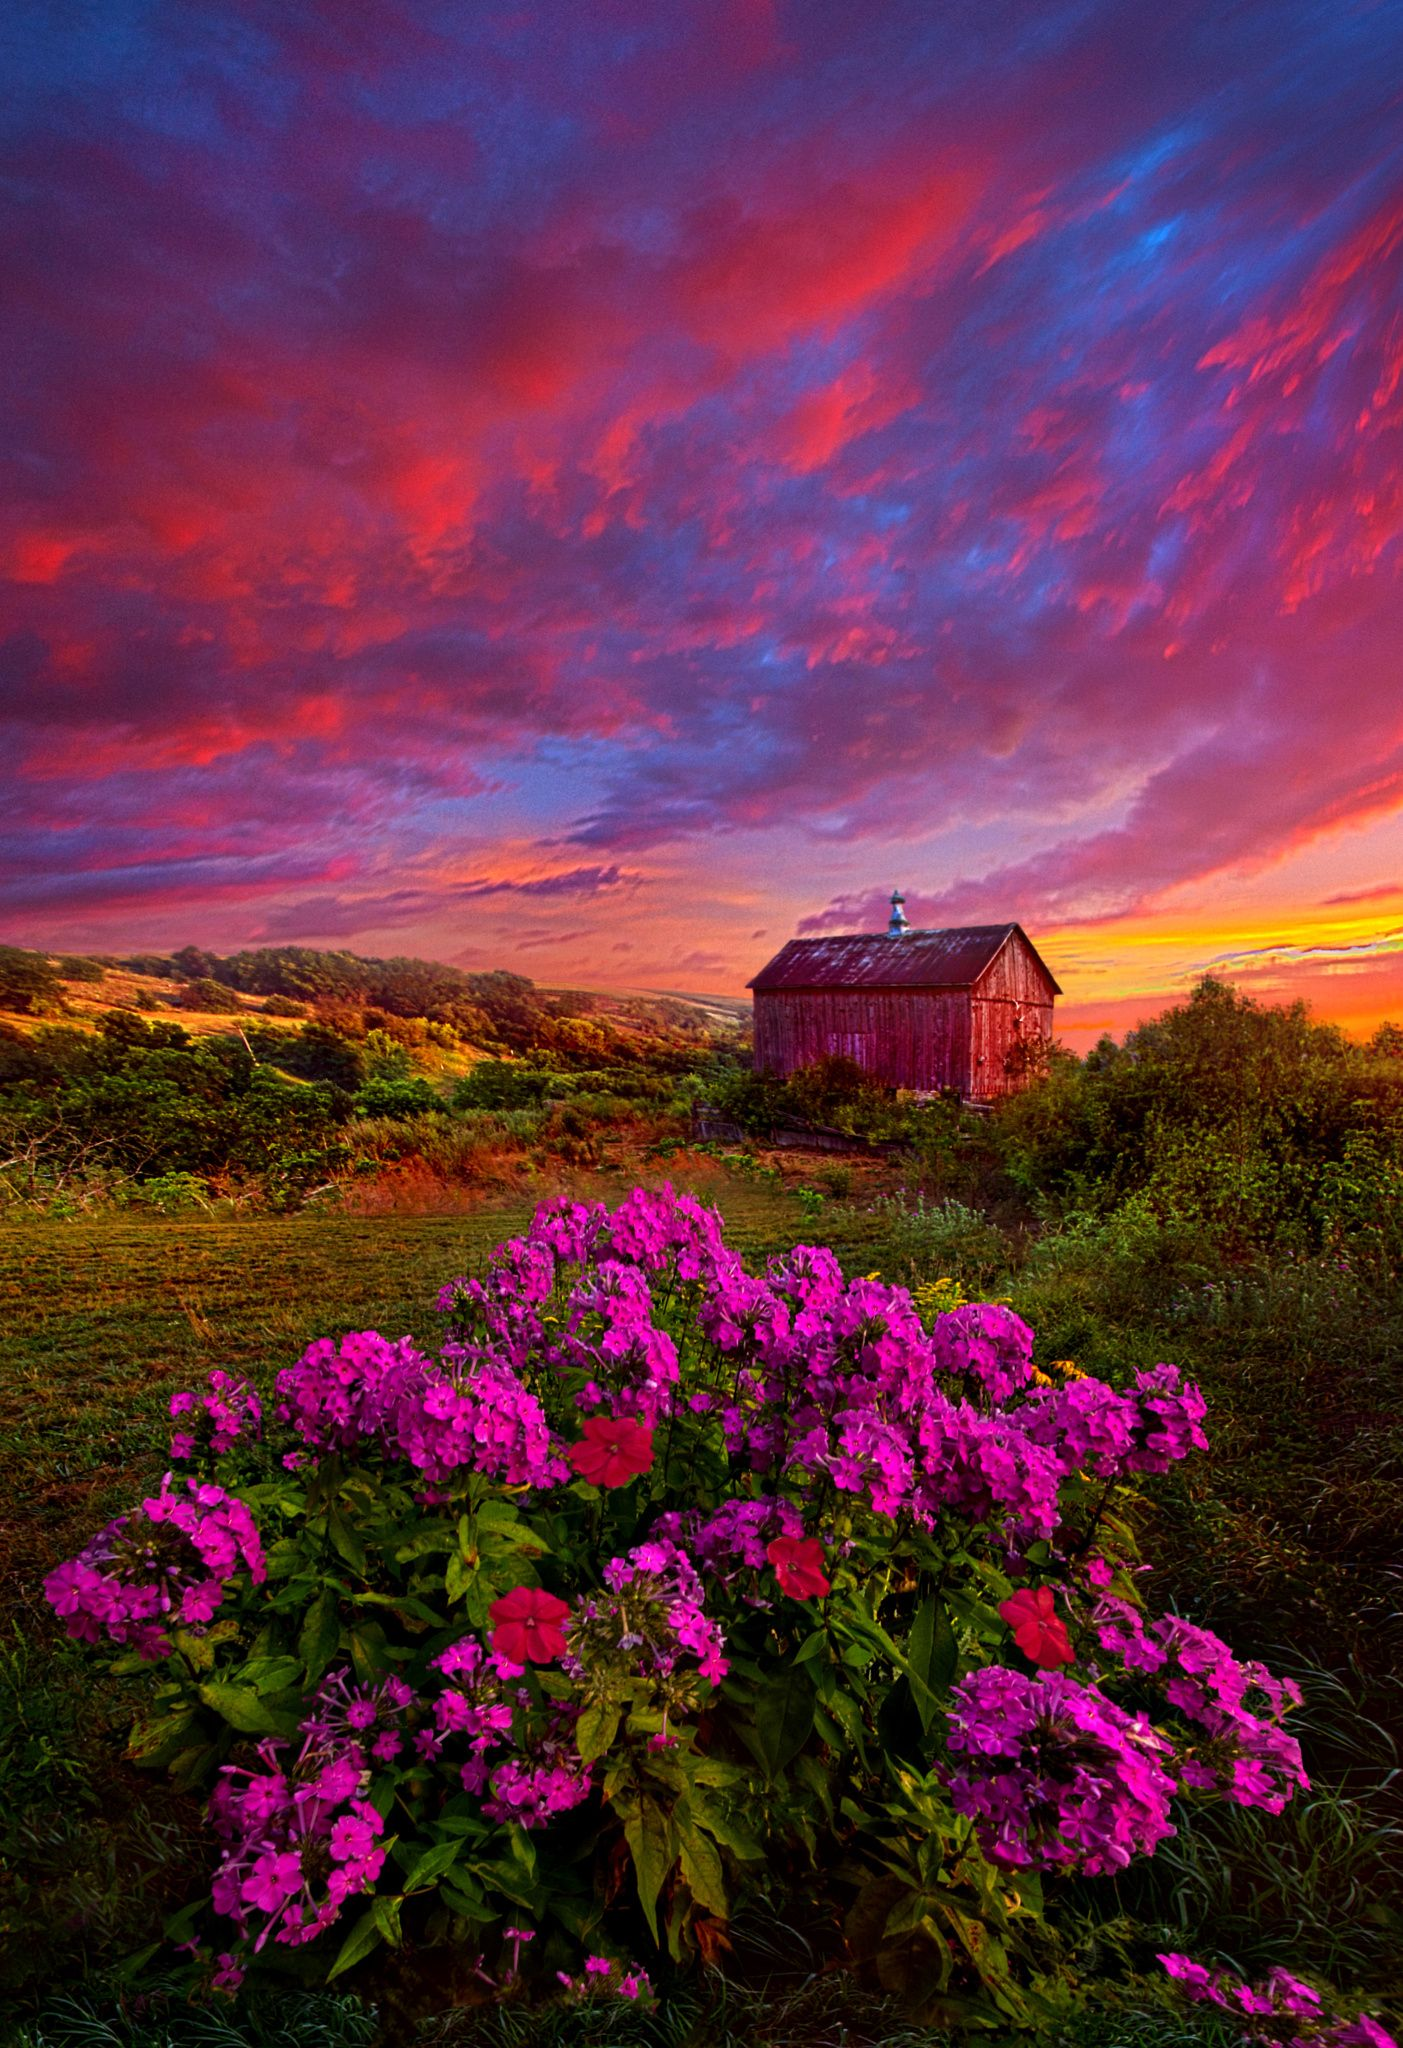 Live in the moment sunrise flower meadow barn landscape in live in the moment sunrise flower meadow barn landscape in wisconsin by phil koch izmirmasajfo